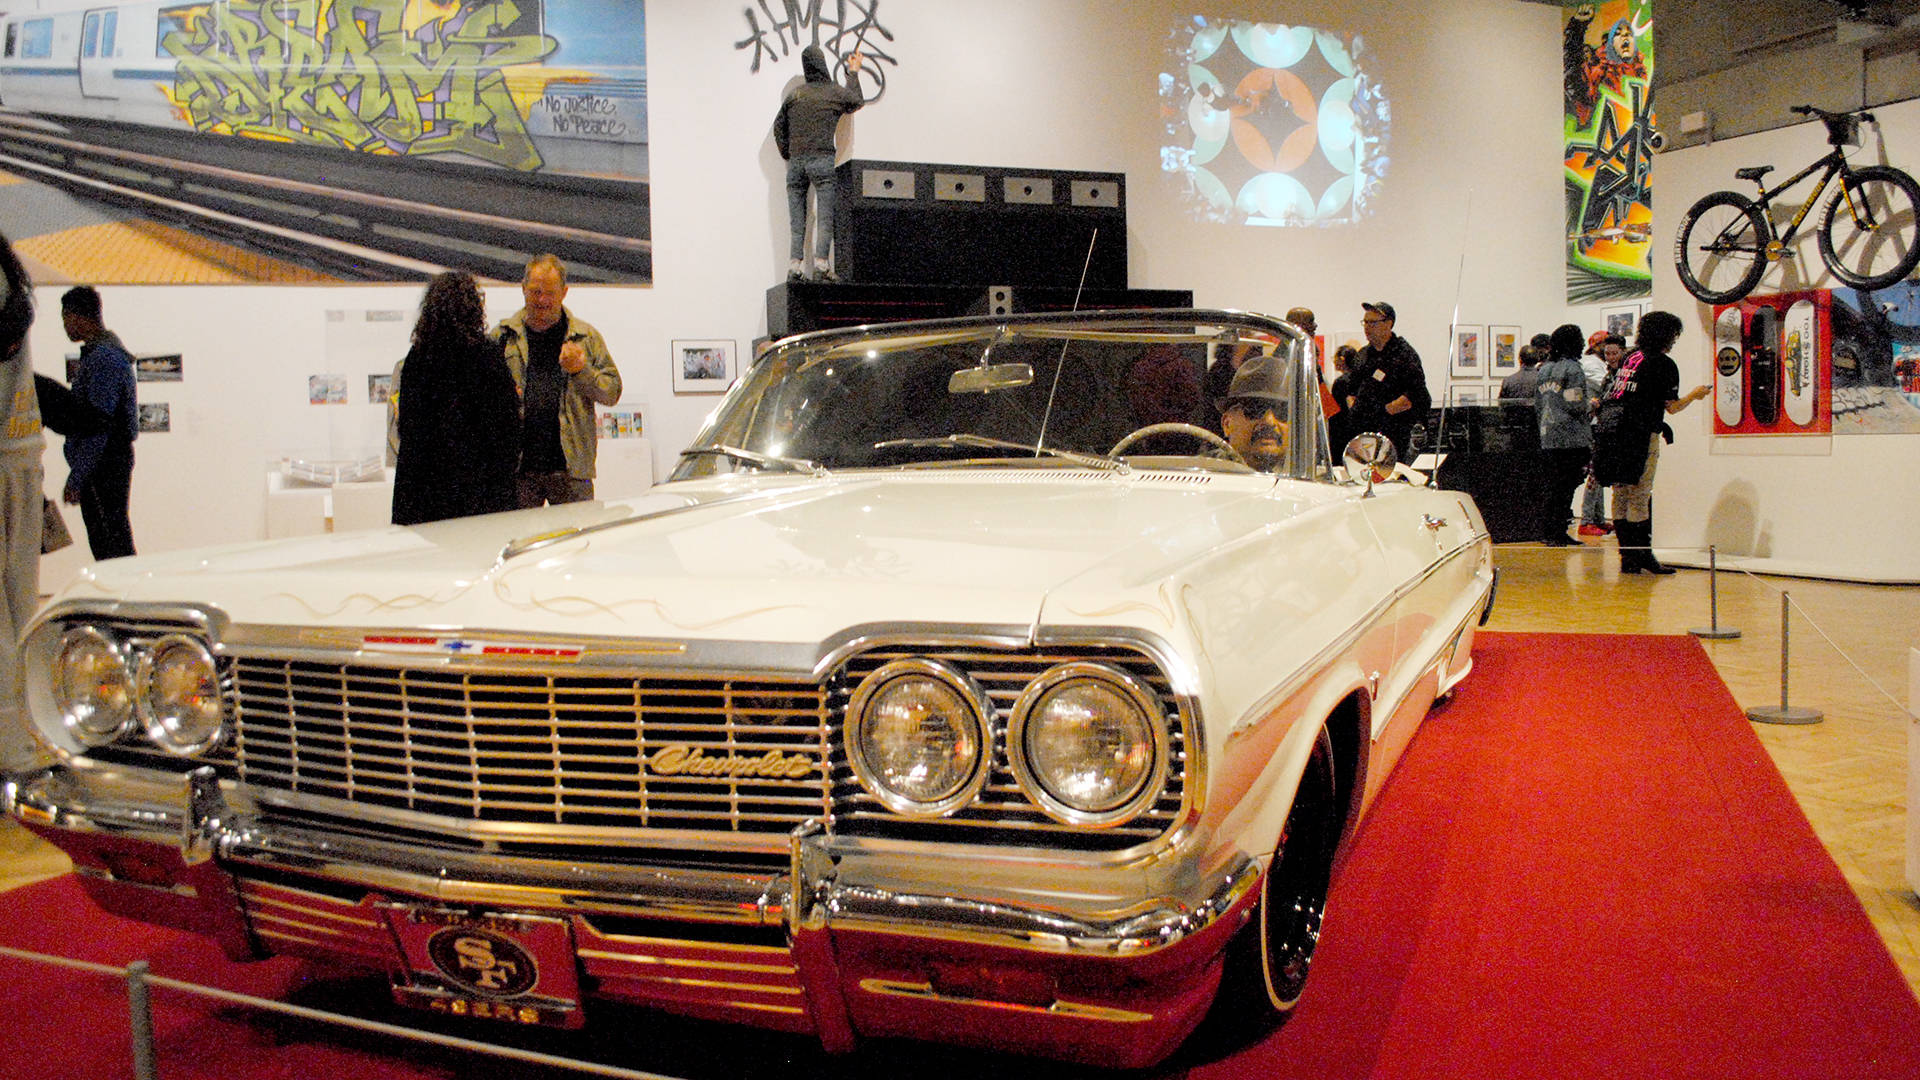 A lowrider in 'Respect: Hip-Hop Style & Wisdom' at the Oakland Museum of California pays homage to West Coast car culture. Nastia Voynovskaya